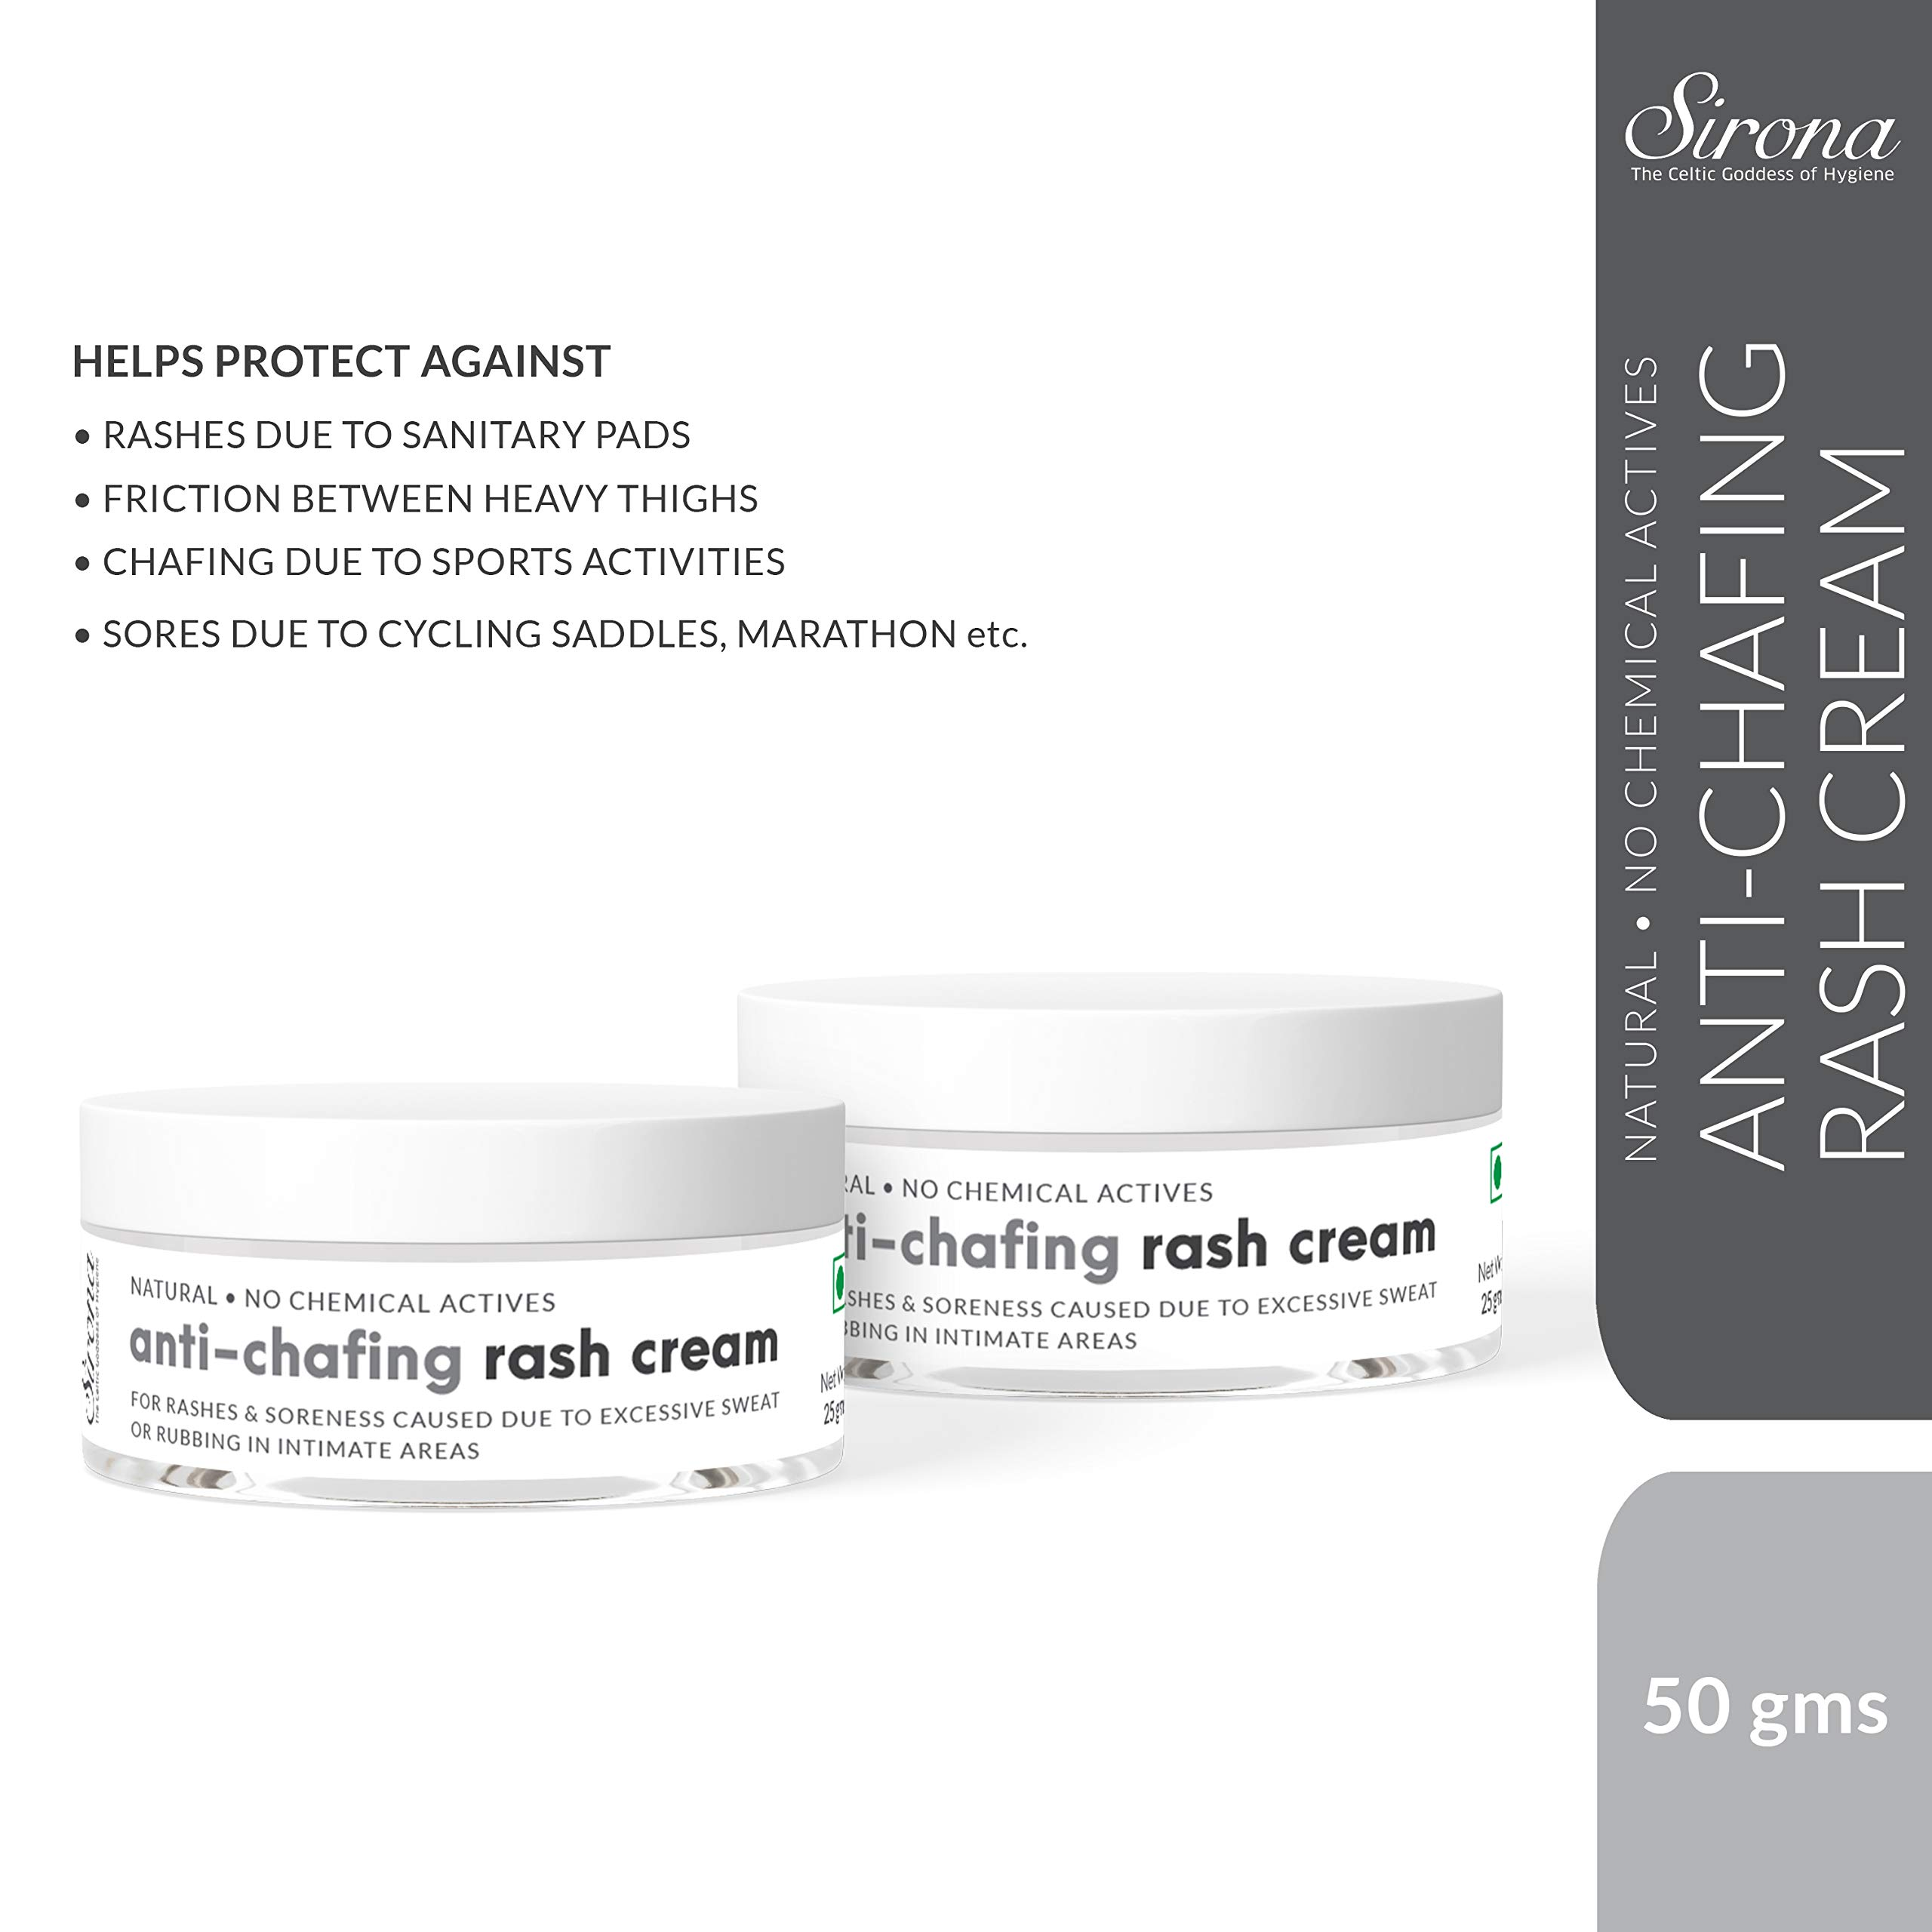 Sirona Natural Anti Chafing Rash Cream - 1.8 Ounce, Skin Healing Cream with 5 Magical Herbs| Helps in Soothing and Preventing Rashes Due to Sanitary Pads, Heavy Thighs, Sports Activities and Running